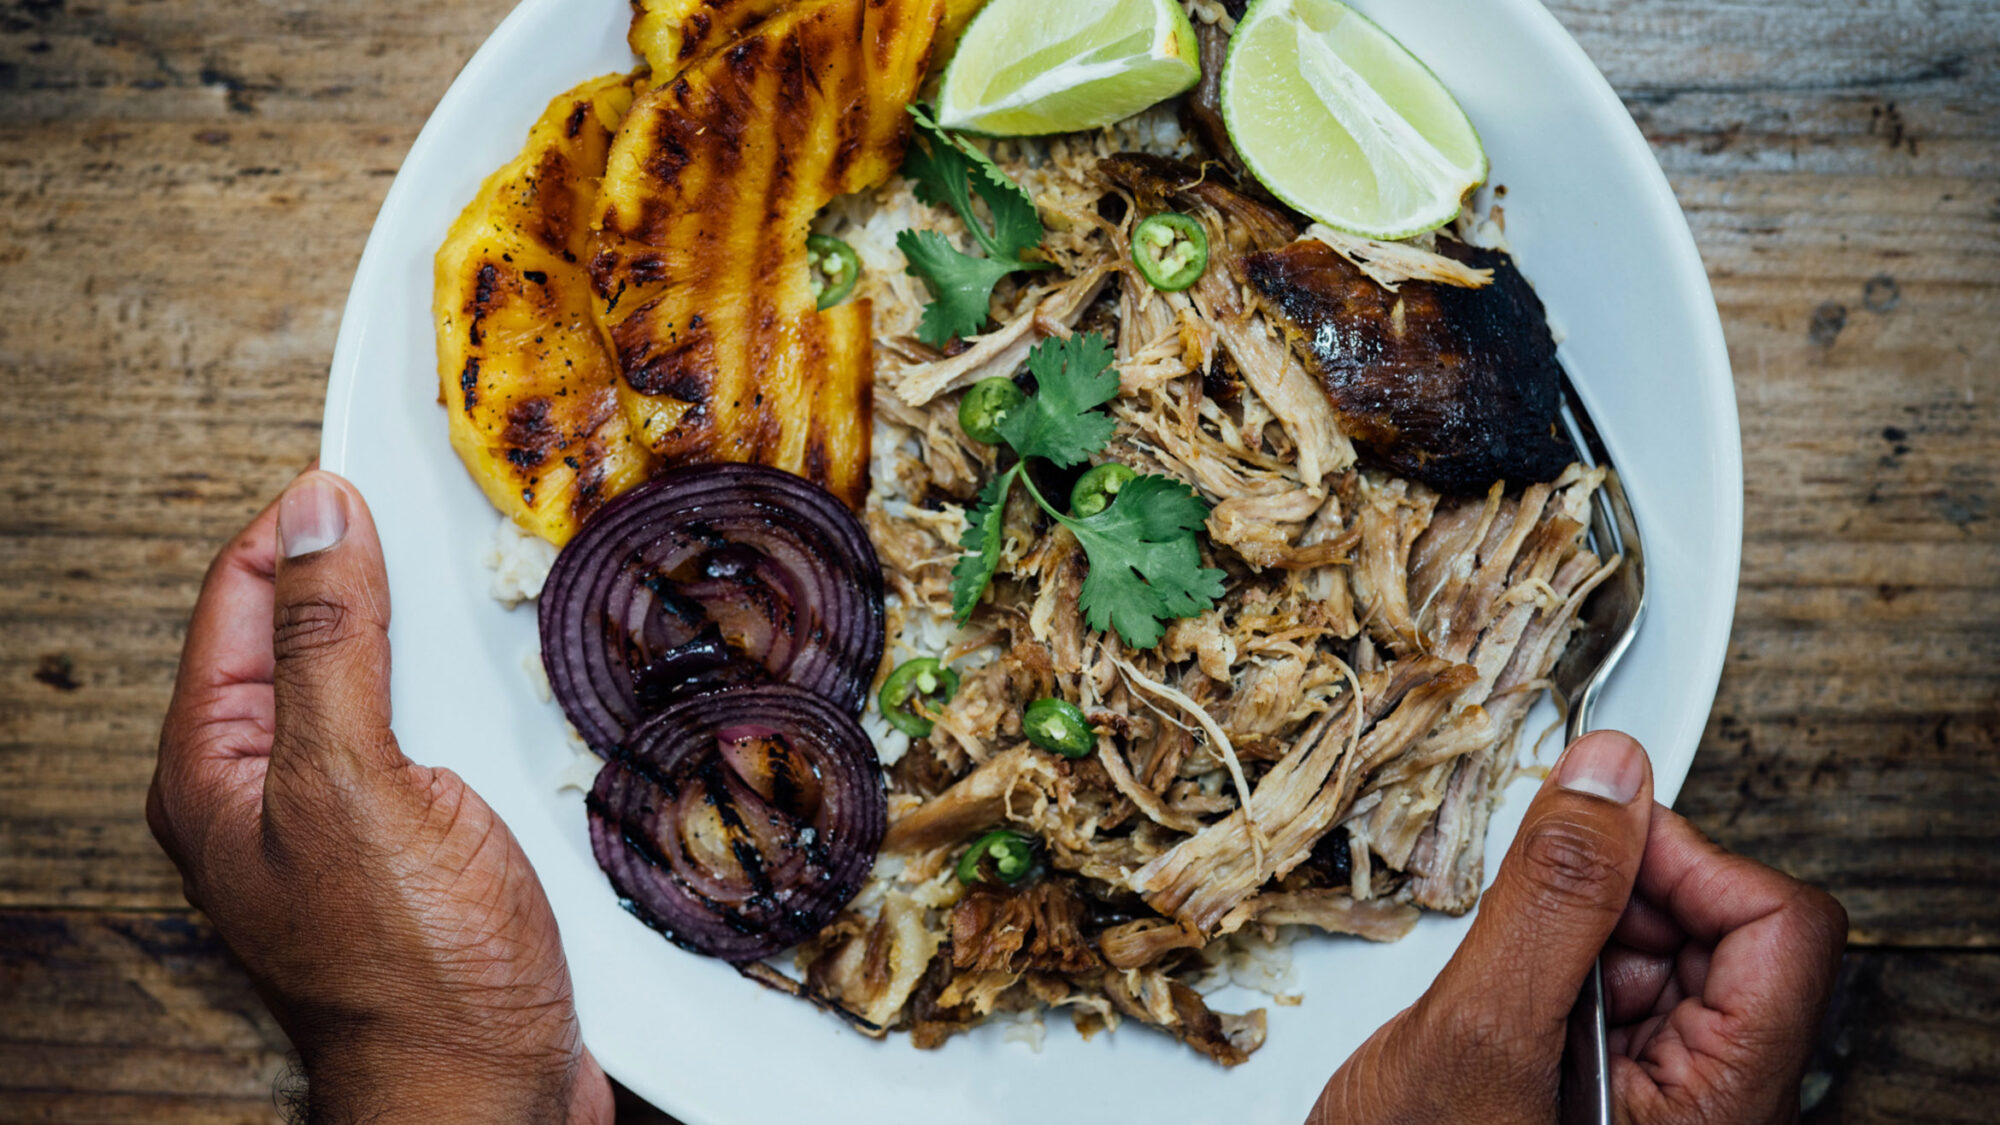 Article-Kalua-Pork-Bowl-With-Grilled-Pineapple-Nik-Sharma